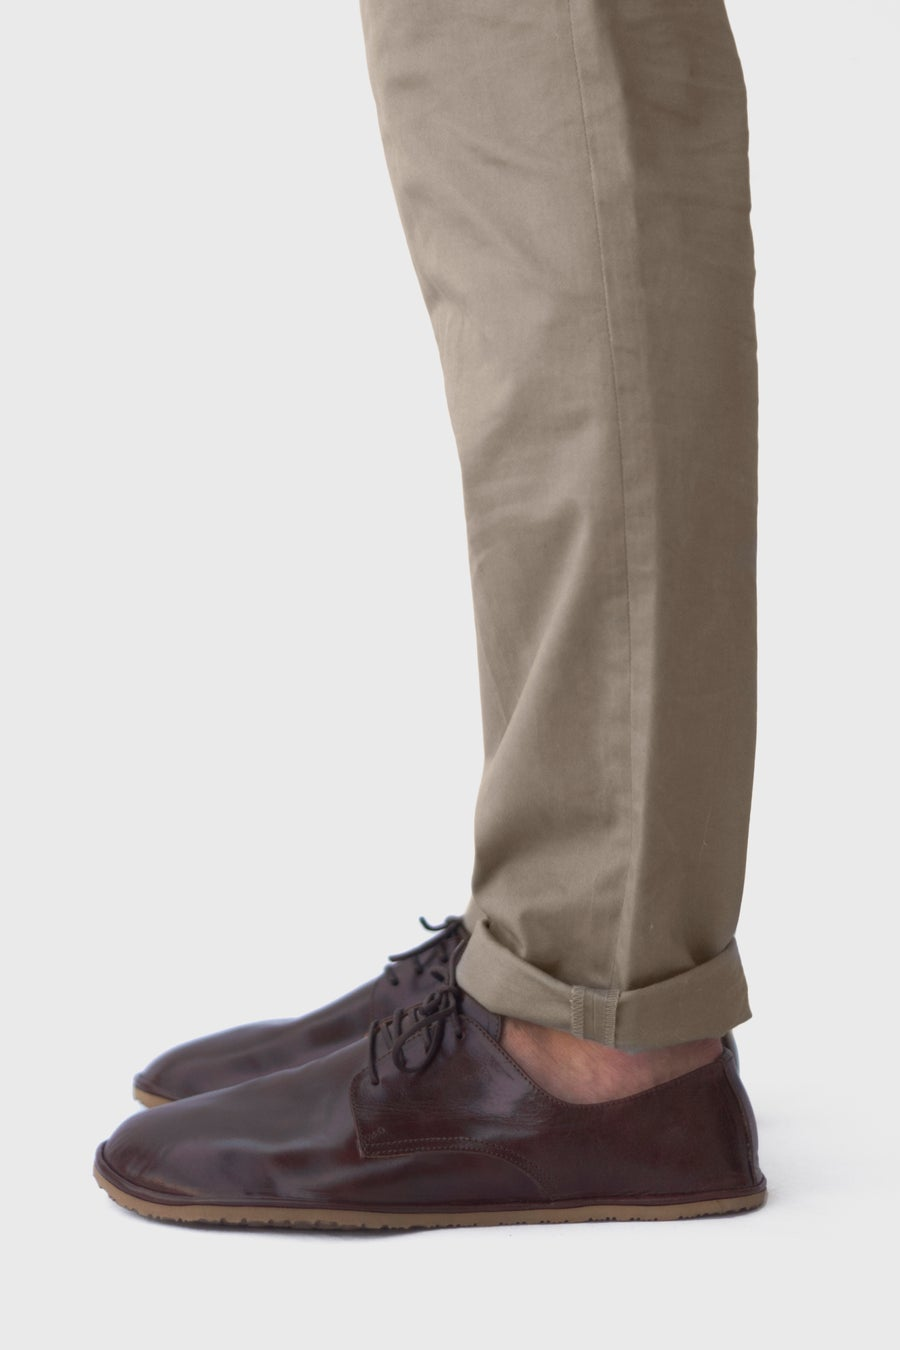 Image of Plain Toe Derby in Lustrous Brown